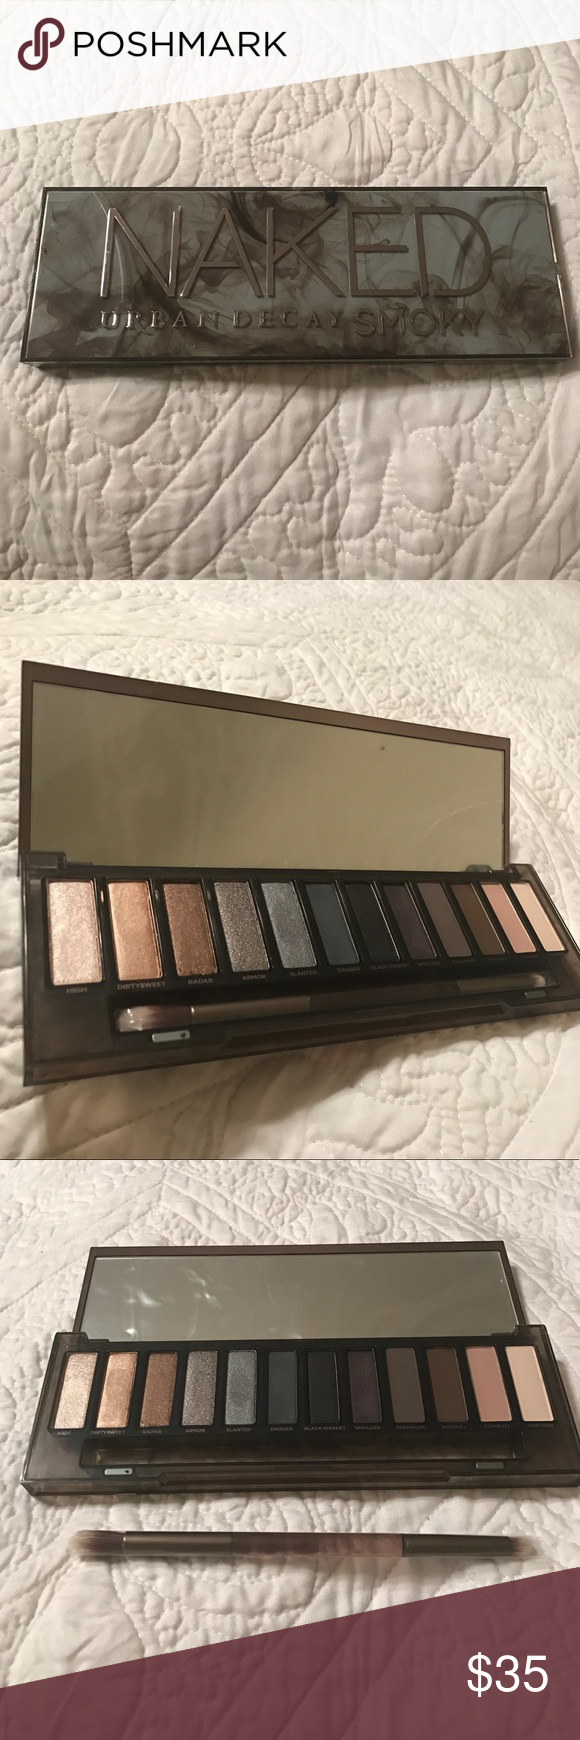 Cosmetic Reviews by Posh: Urban Decay Naked Palette VS